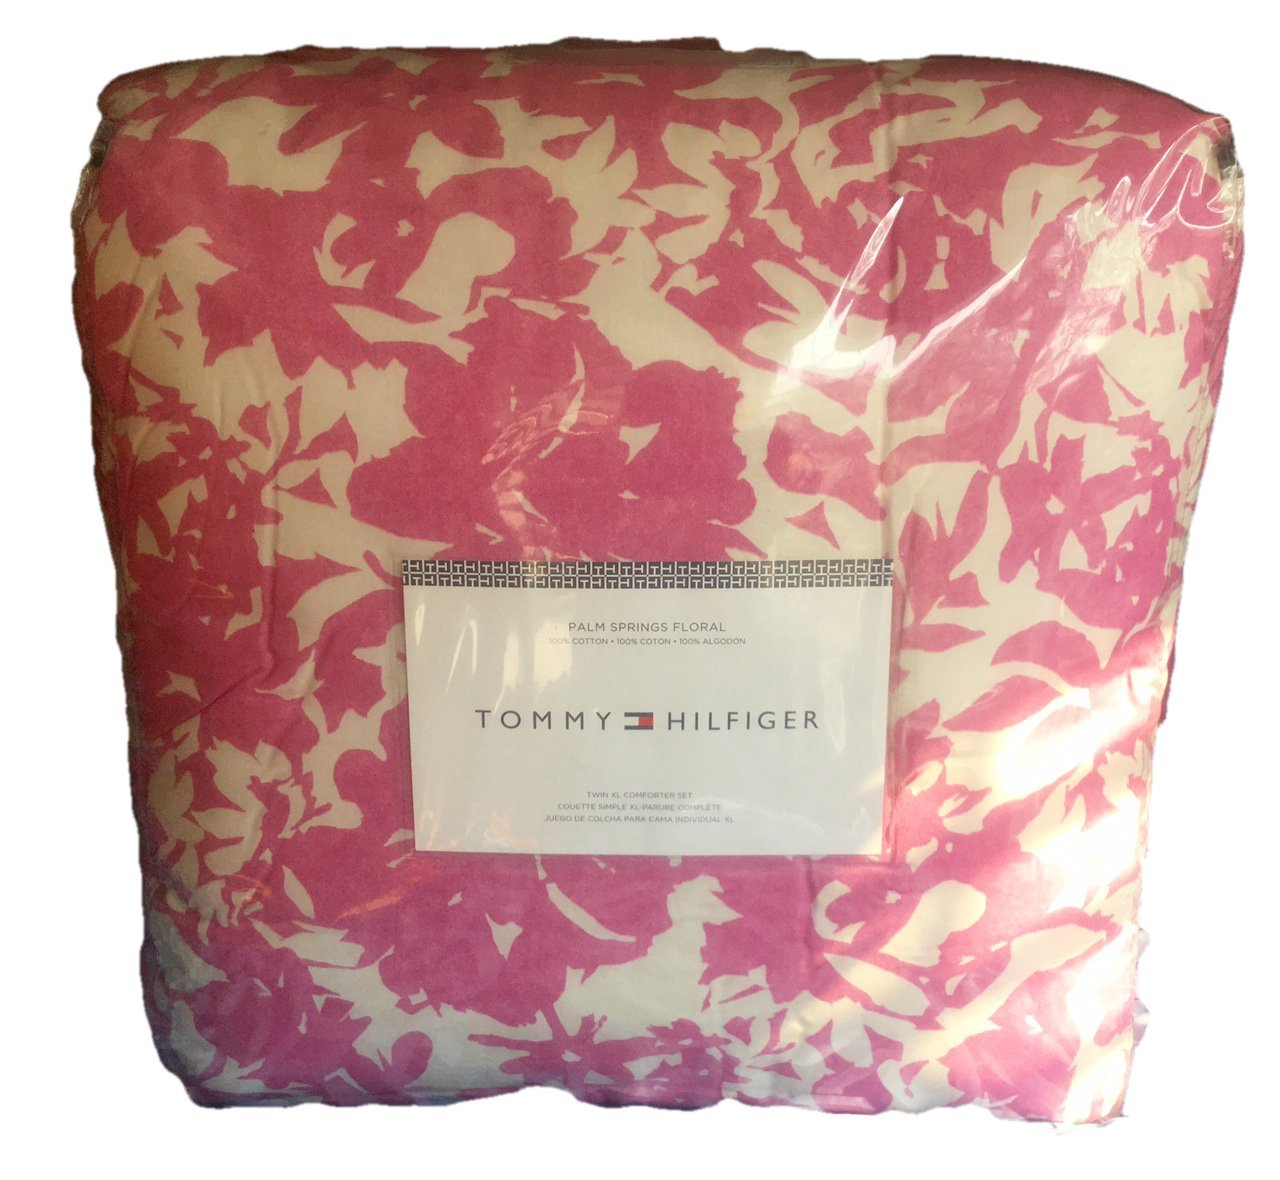 Tommy Hilfiger Palm Springs Floral Comforter Twin XL with Sham